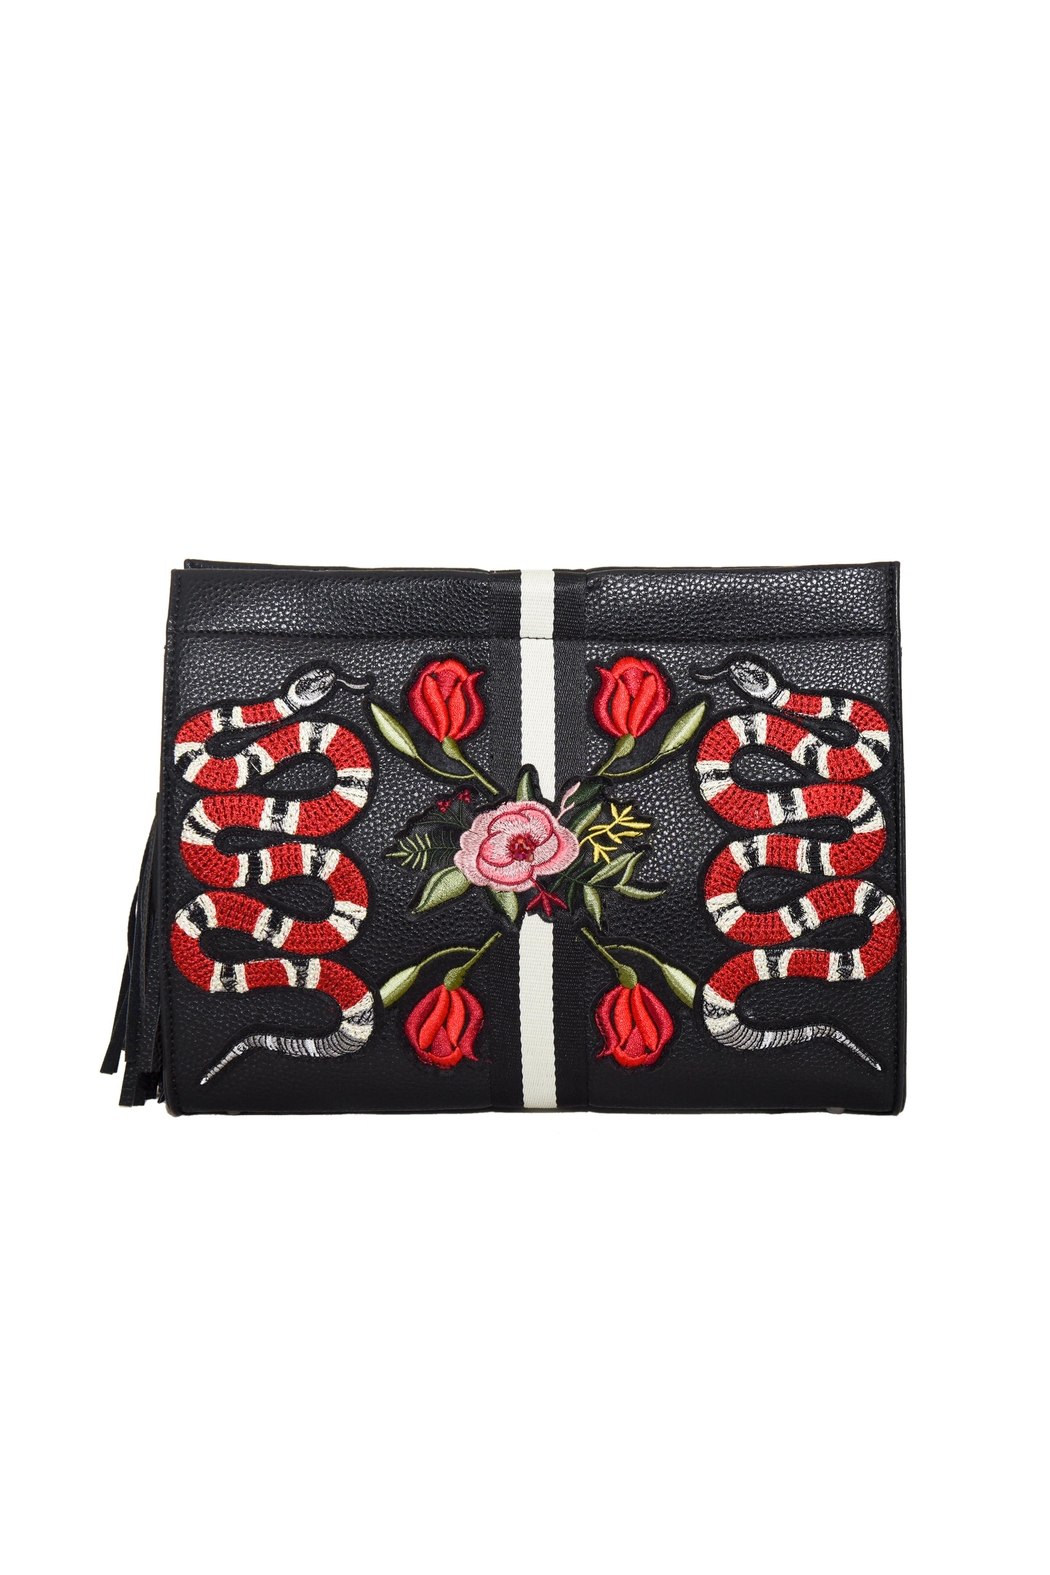 INZI Snakes N Roses Clutch - Front Cropped Image